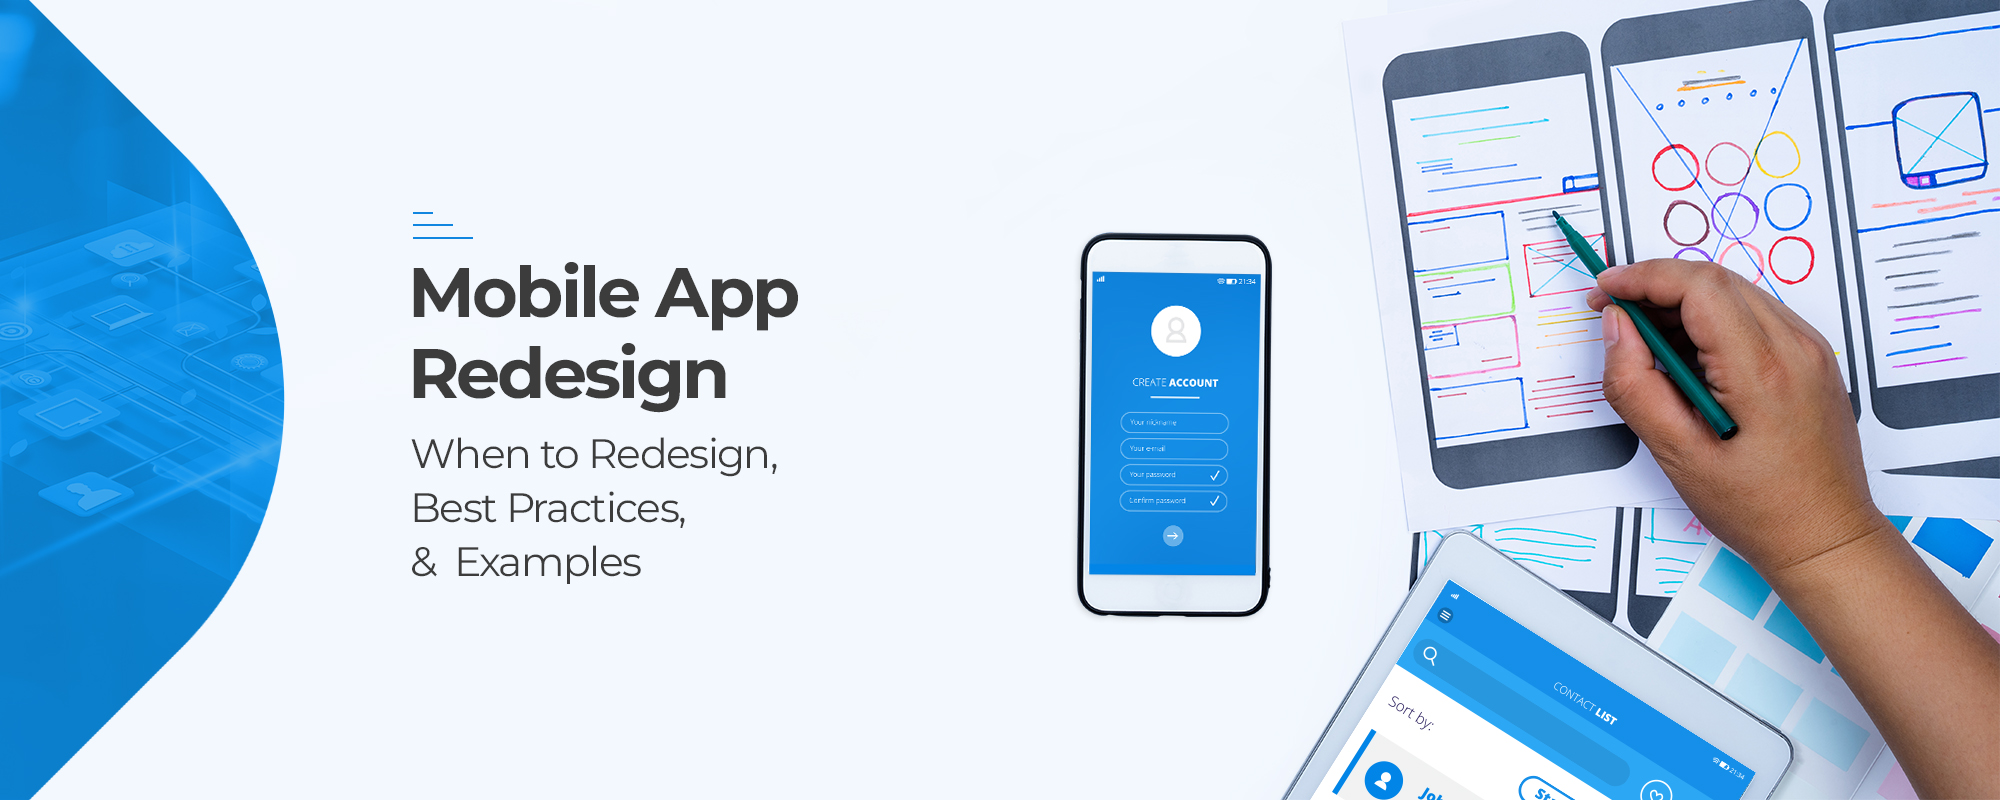 What you Should Know Before Going for Mobile App Redesign?